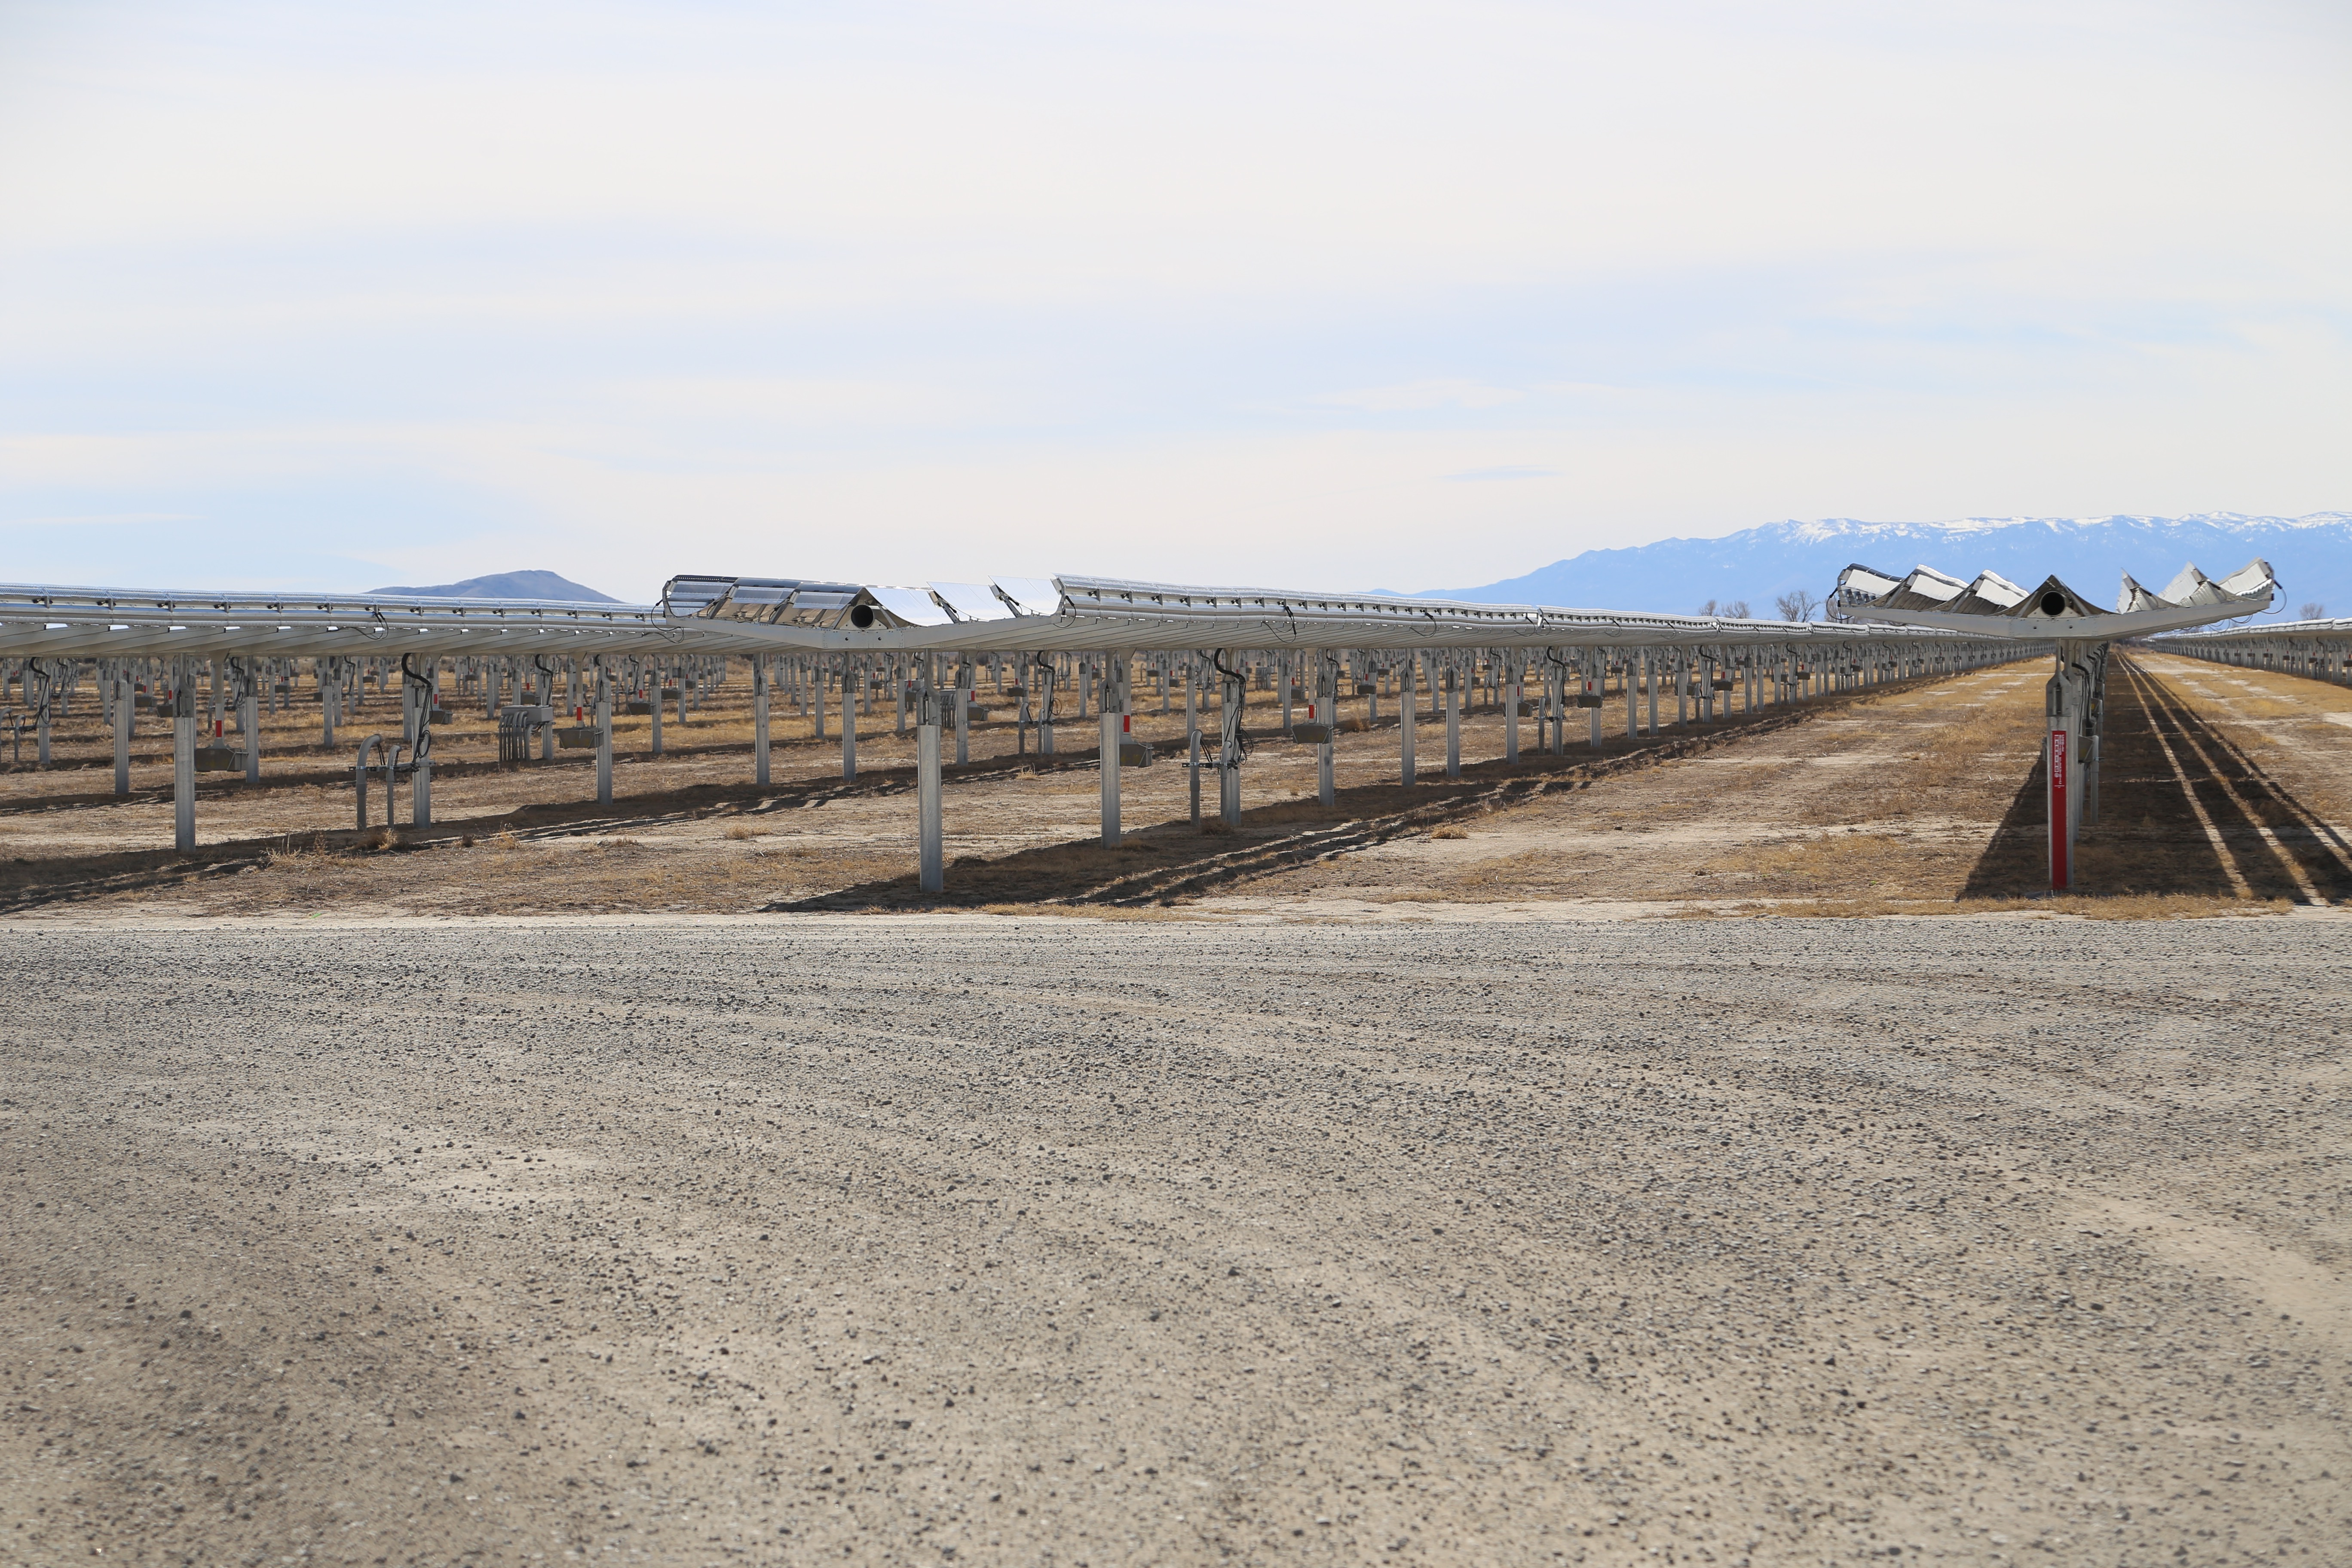 Apple's Fort Churchill solar farm in Yerington, Nev. became fully operational a few months ago.